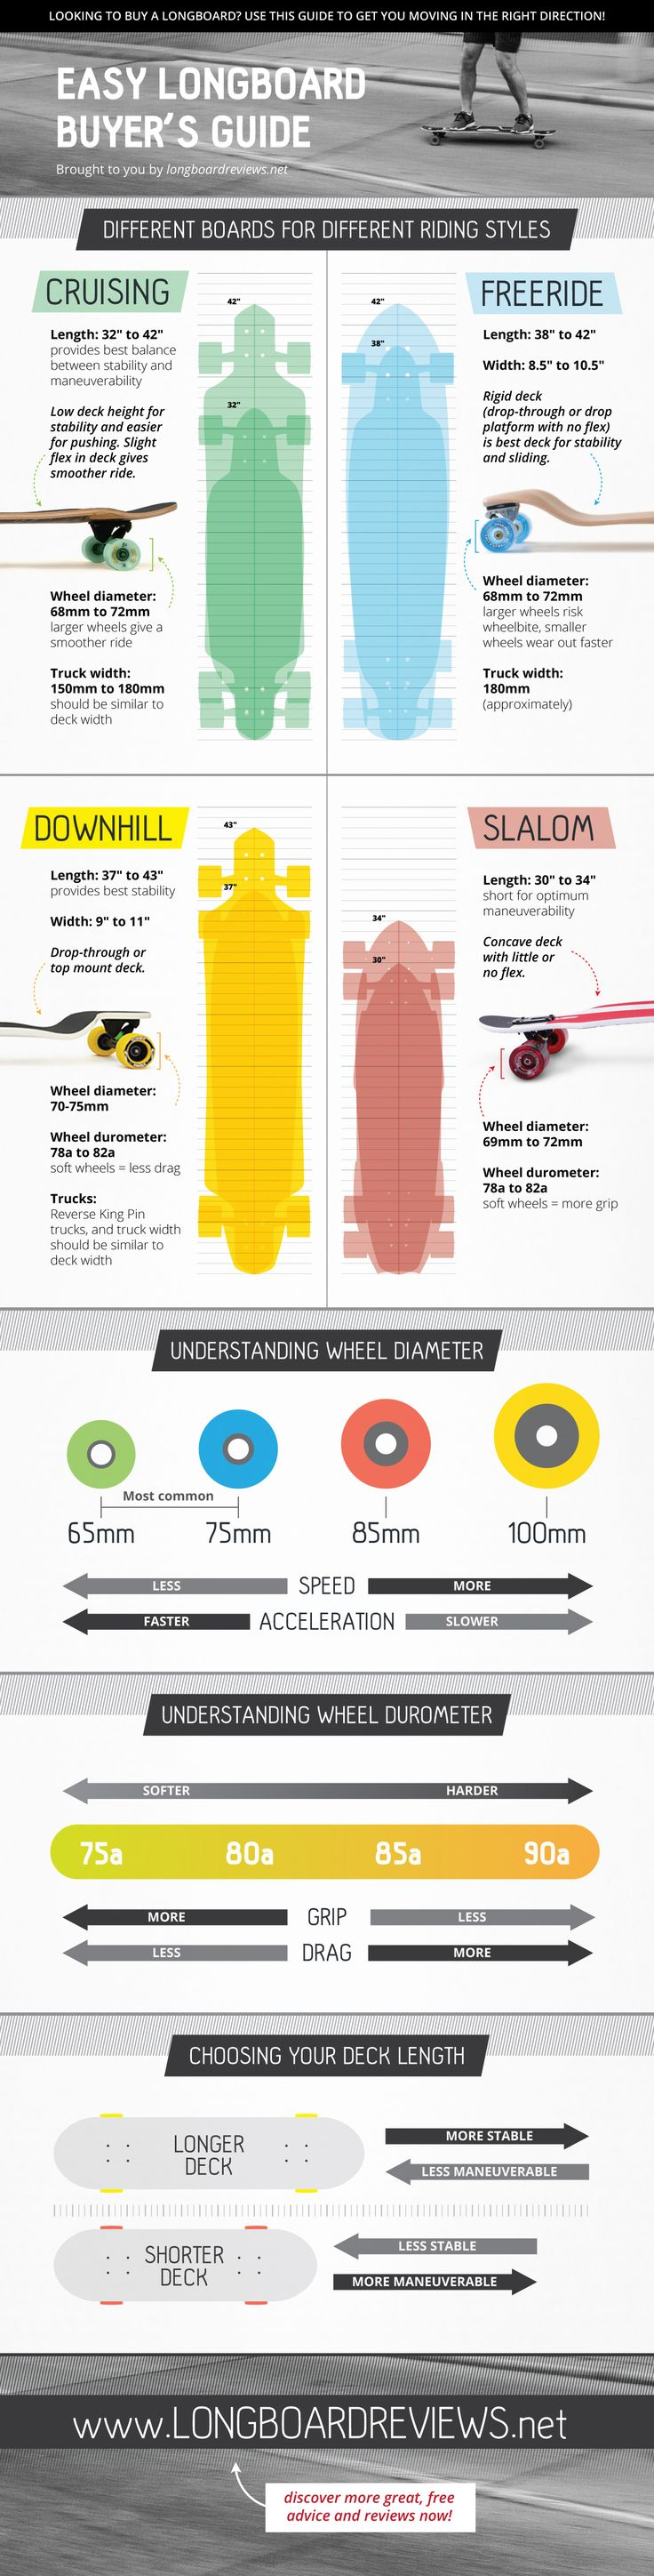 Easy Longboard Buyers Guide infographic